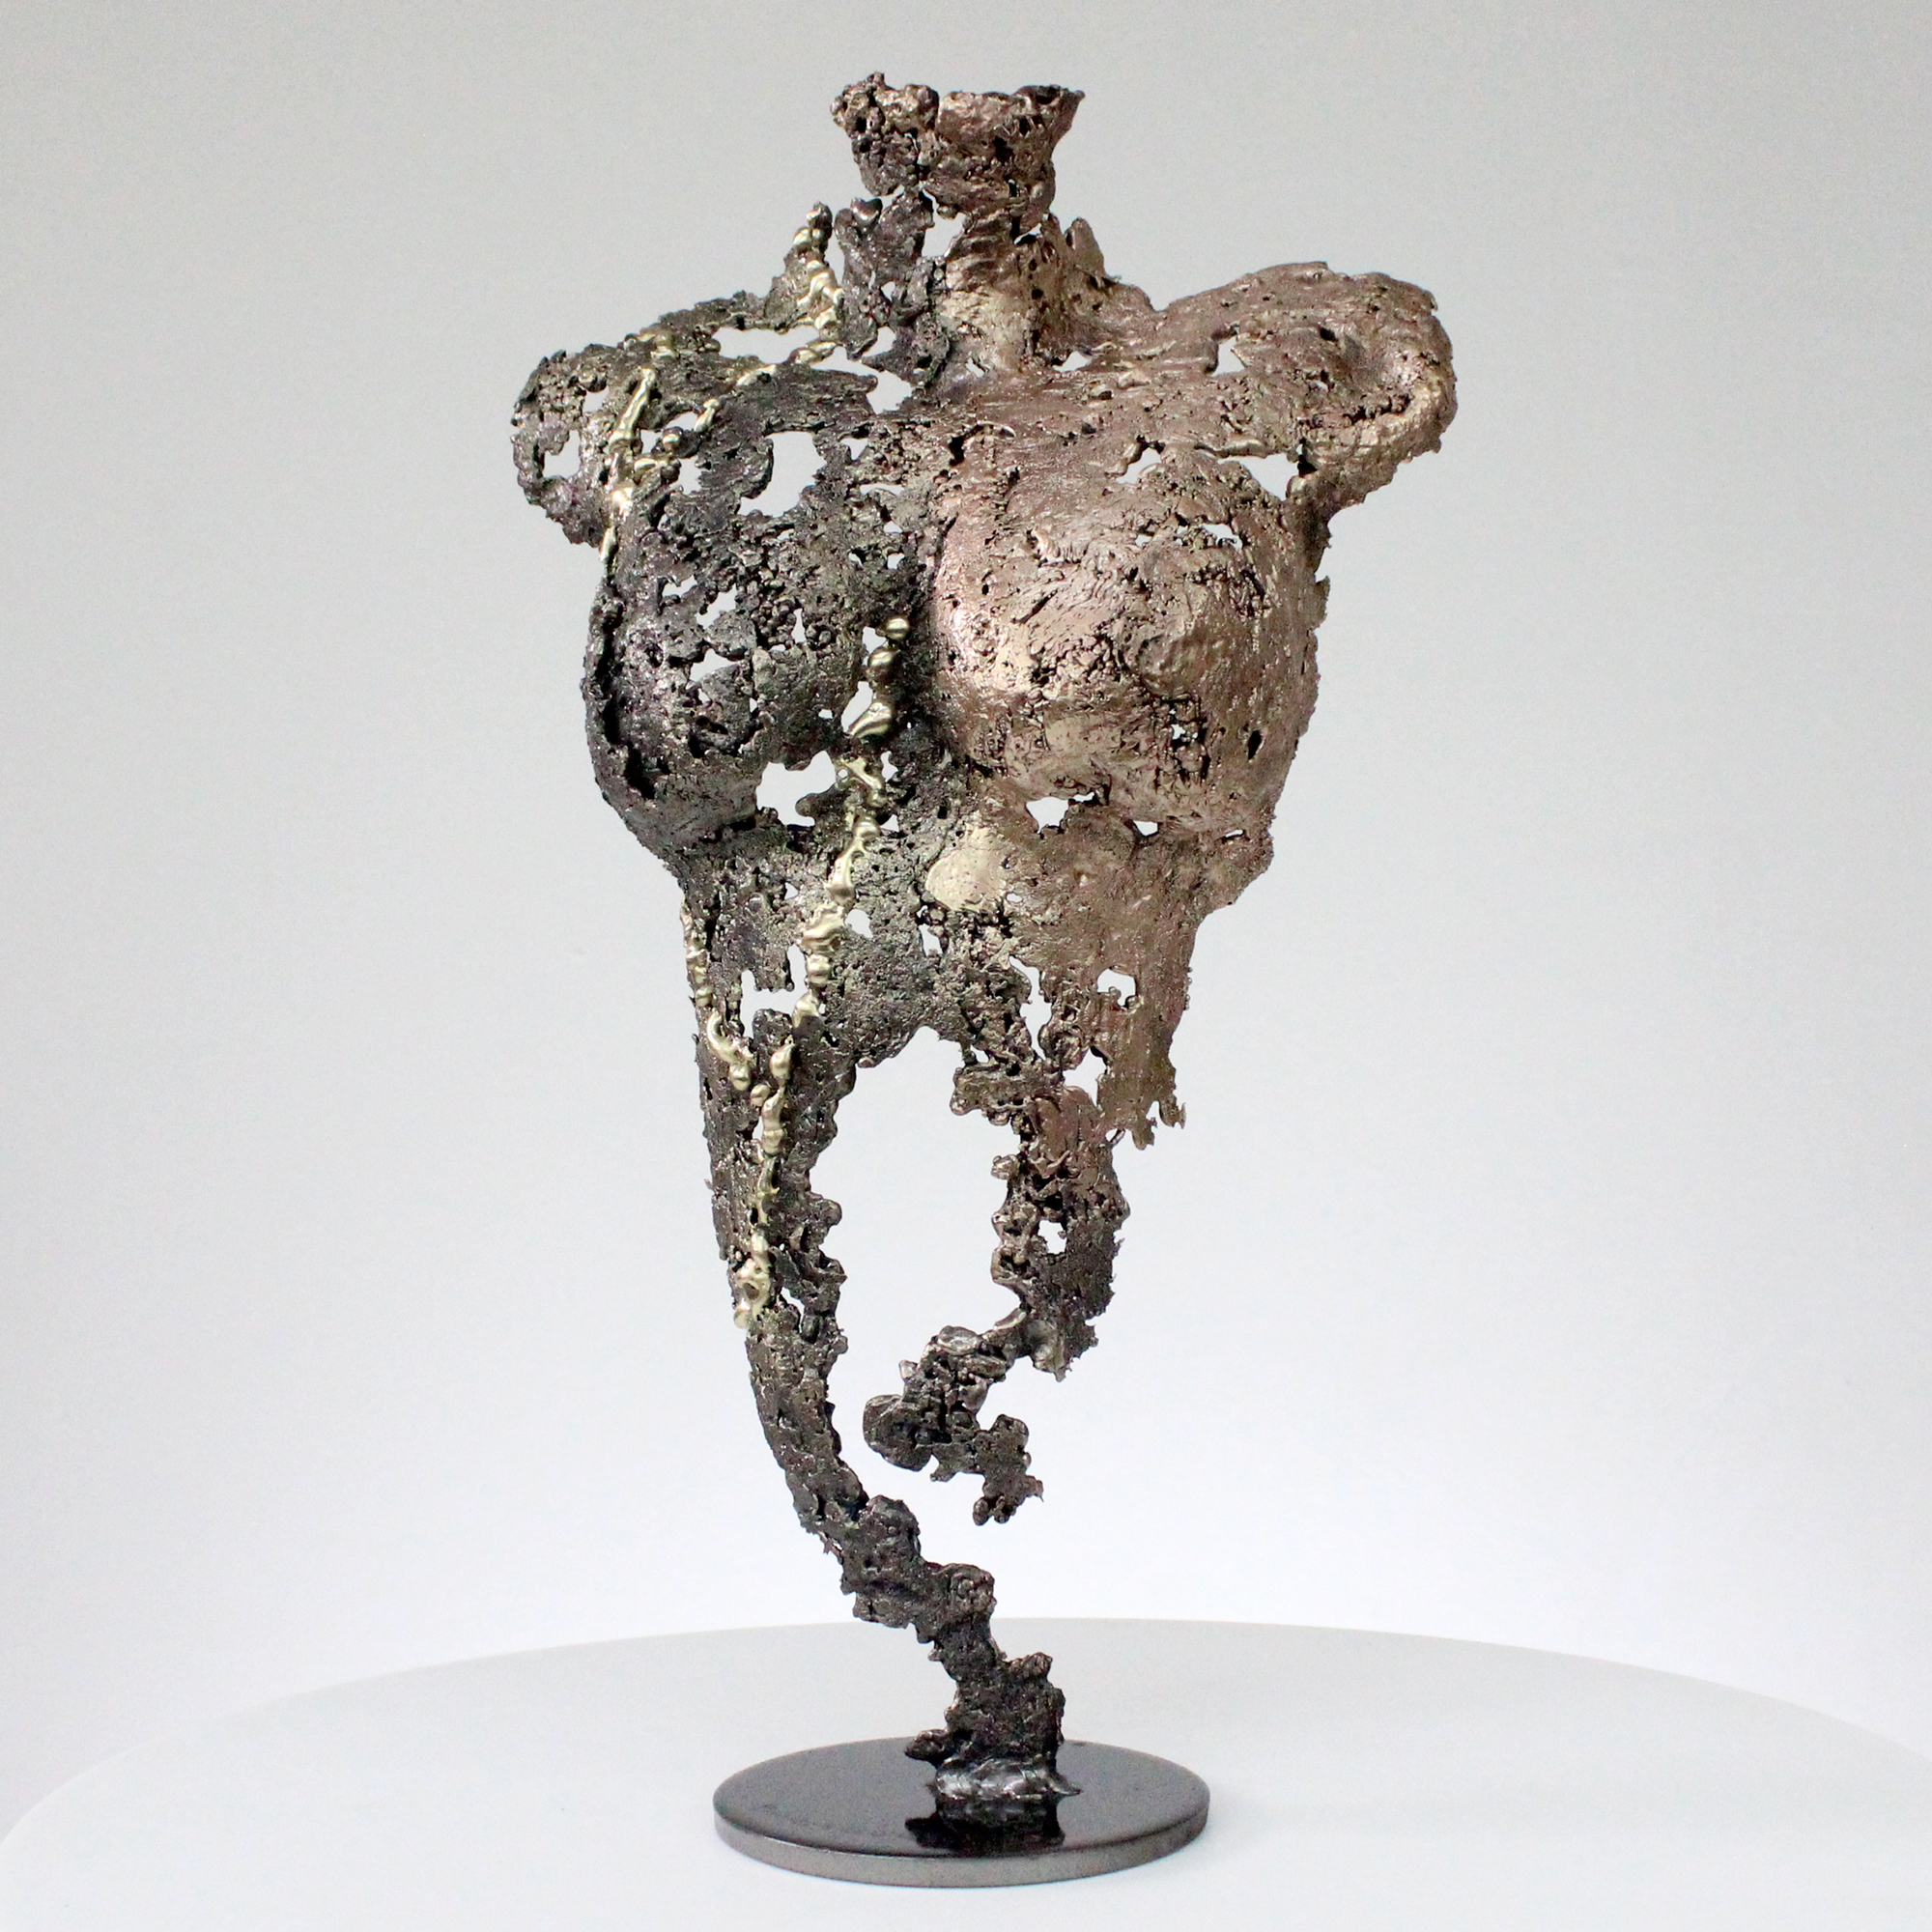 Pavarti Nuances - Sculpture corps femme métal dentelle acier bronze et Laiton - Body Shades woman metal artwork - lace steel, bronze brass - Buil